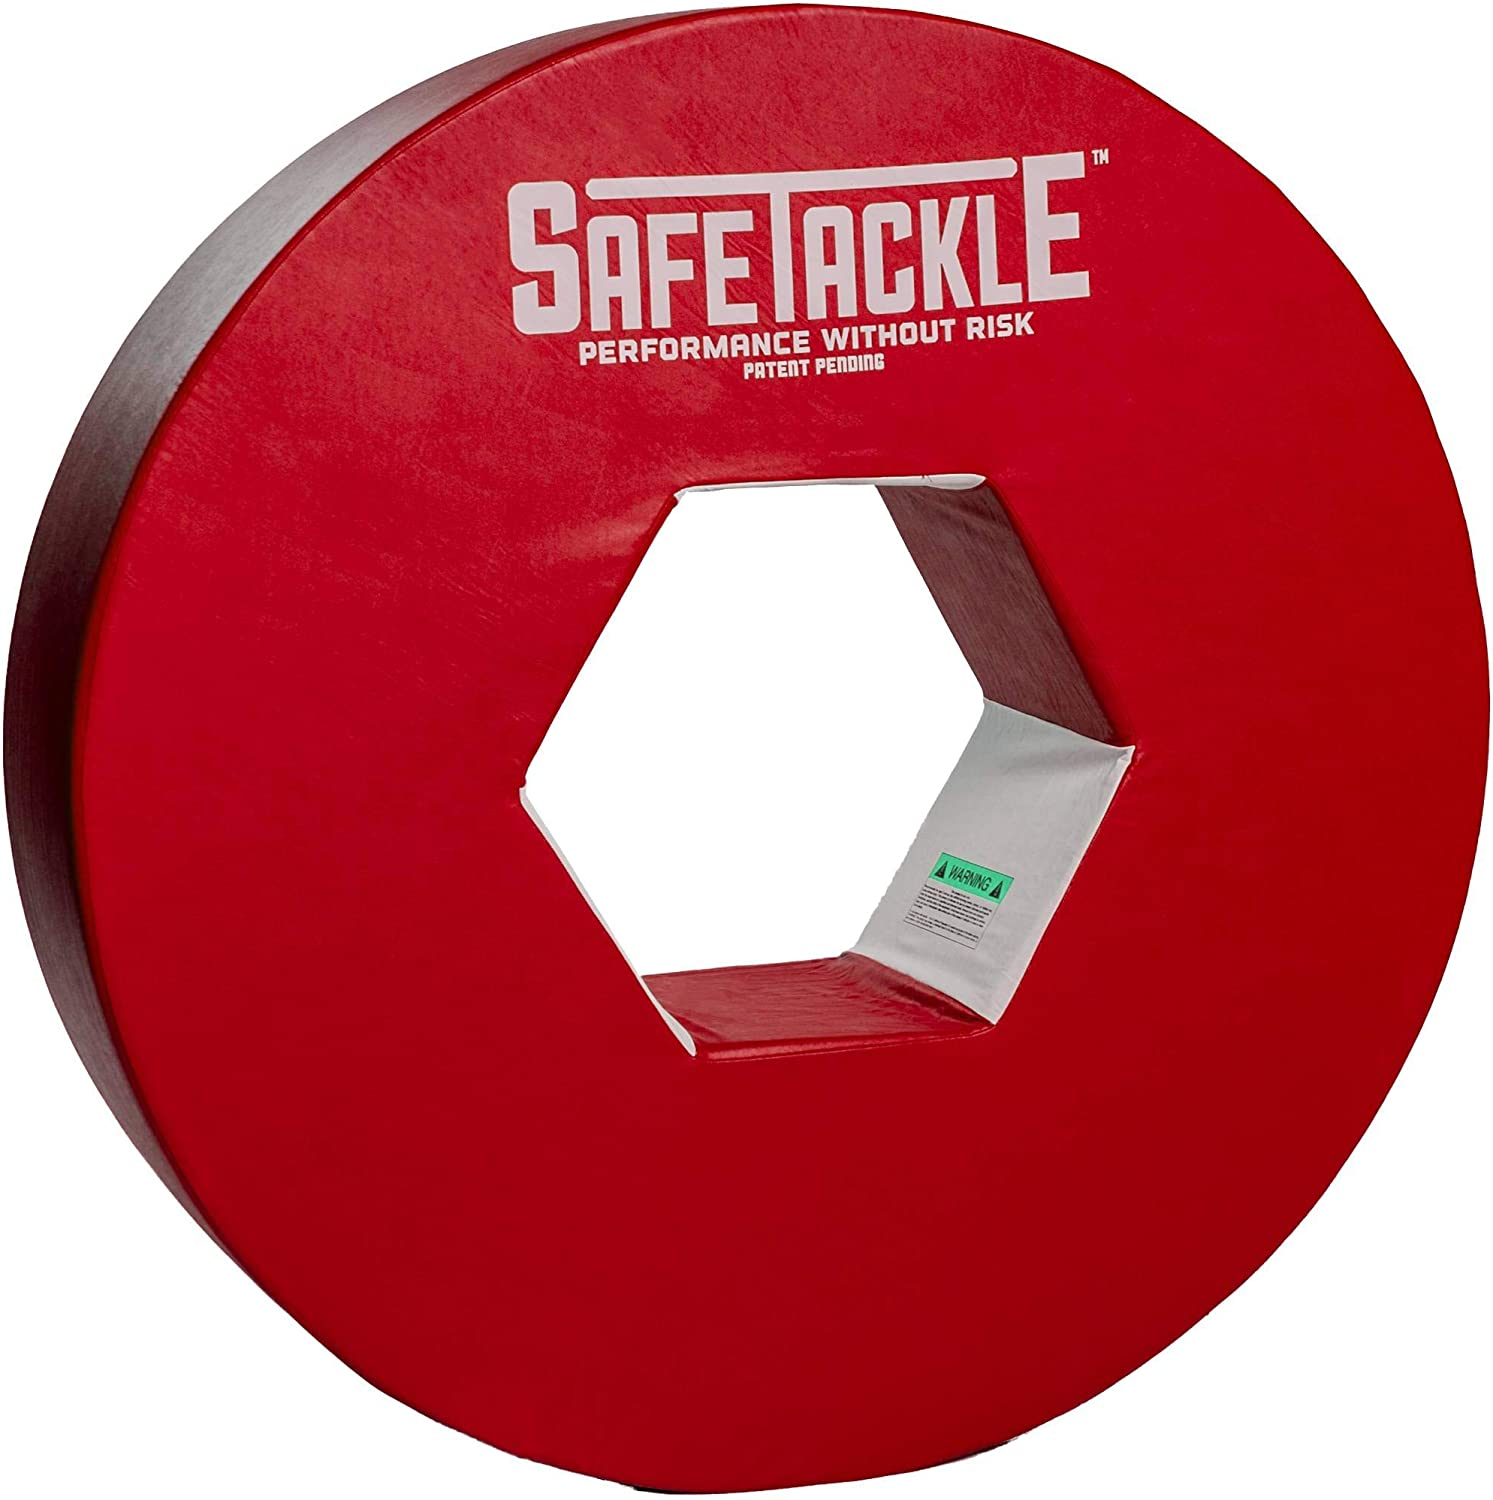 Image of SafeTackle Pro Football Tackle Ring - Performance Without Risk